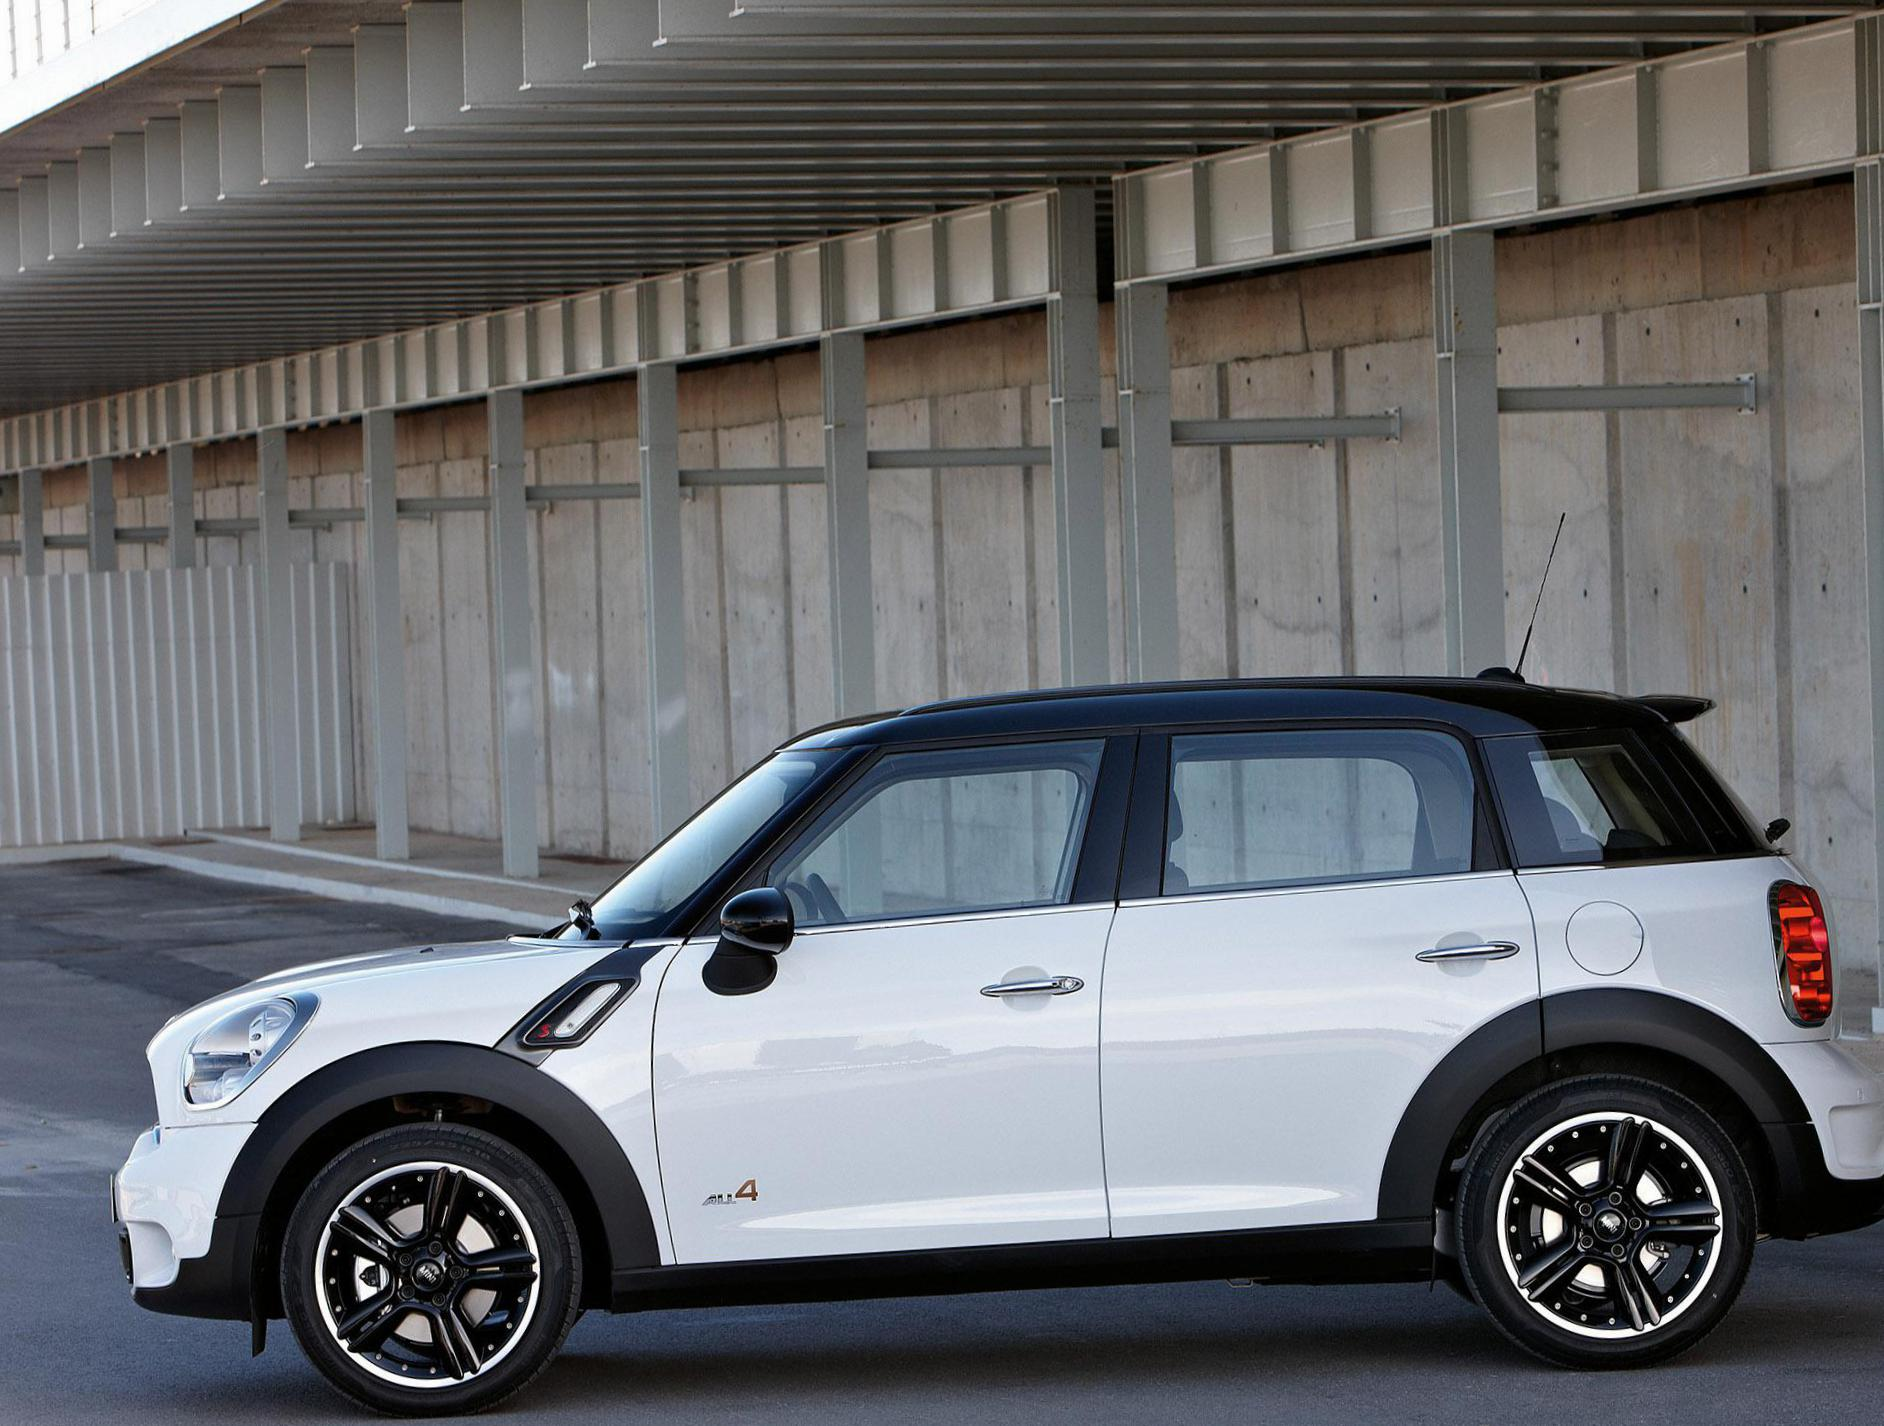 MINI Cooper S Countryman new hatchback